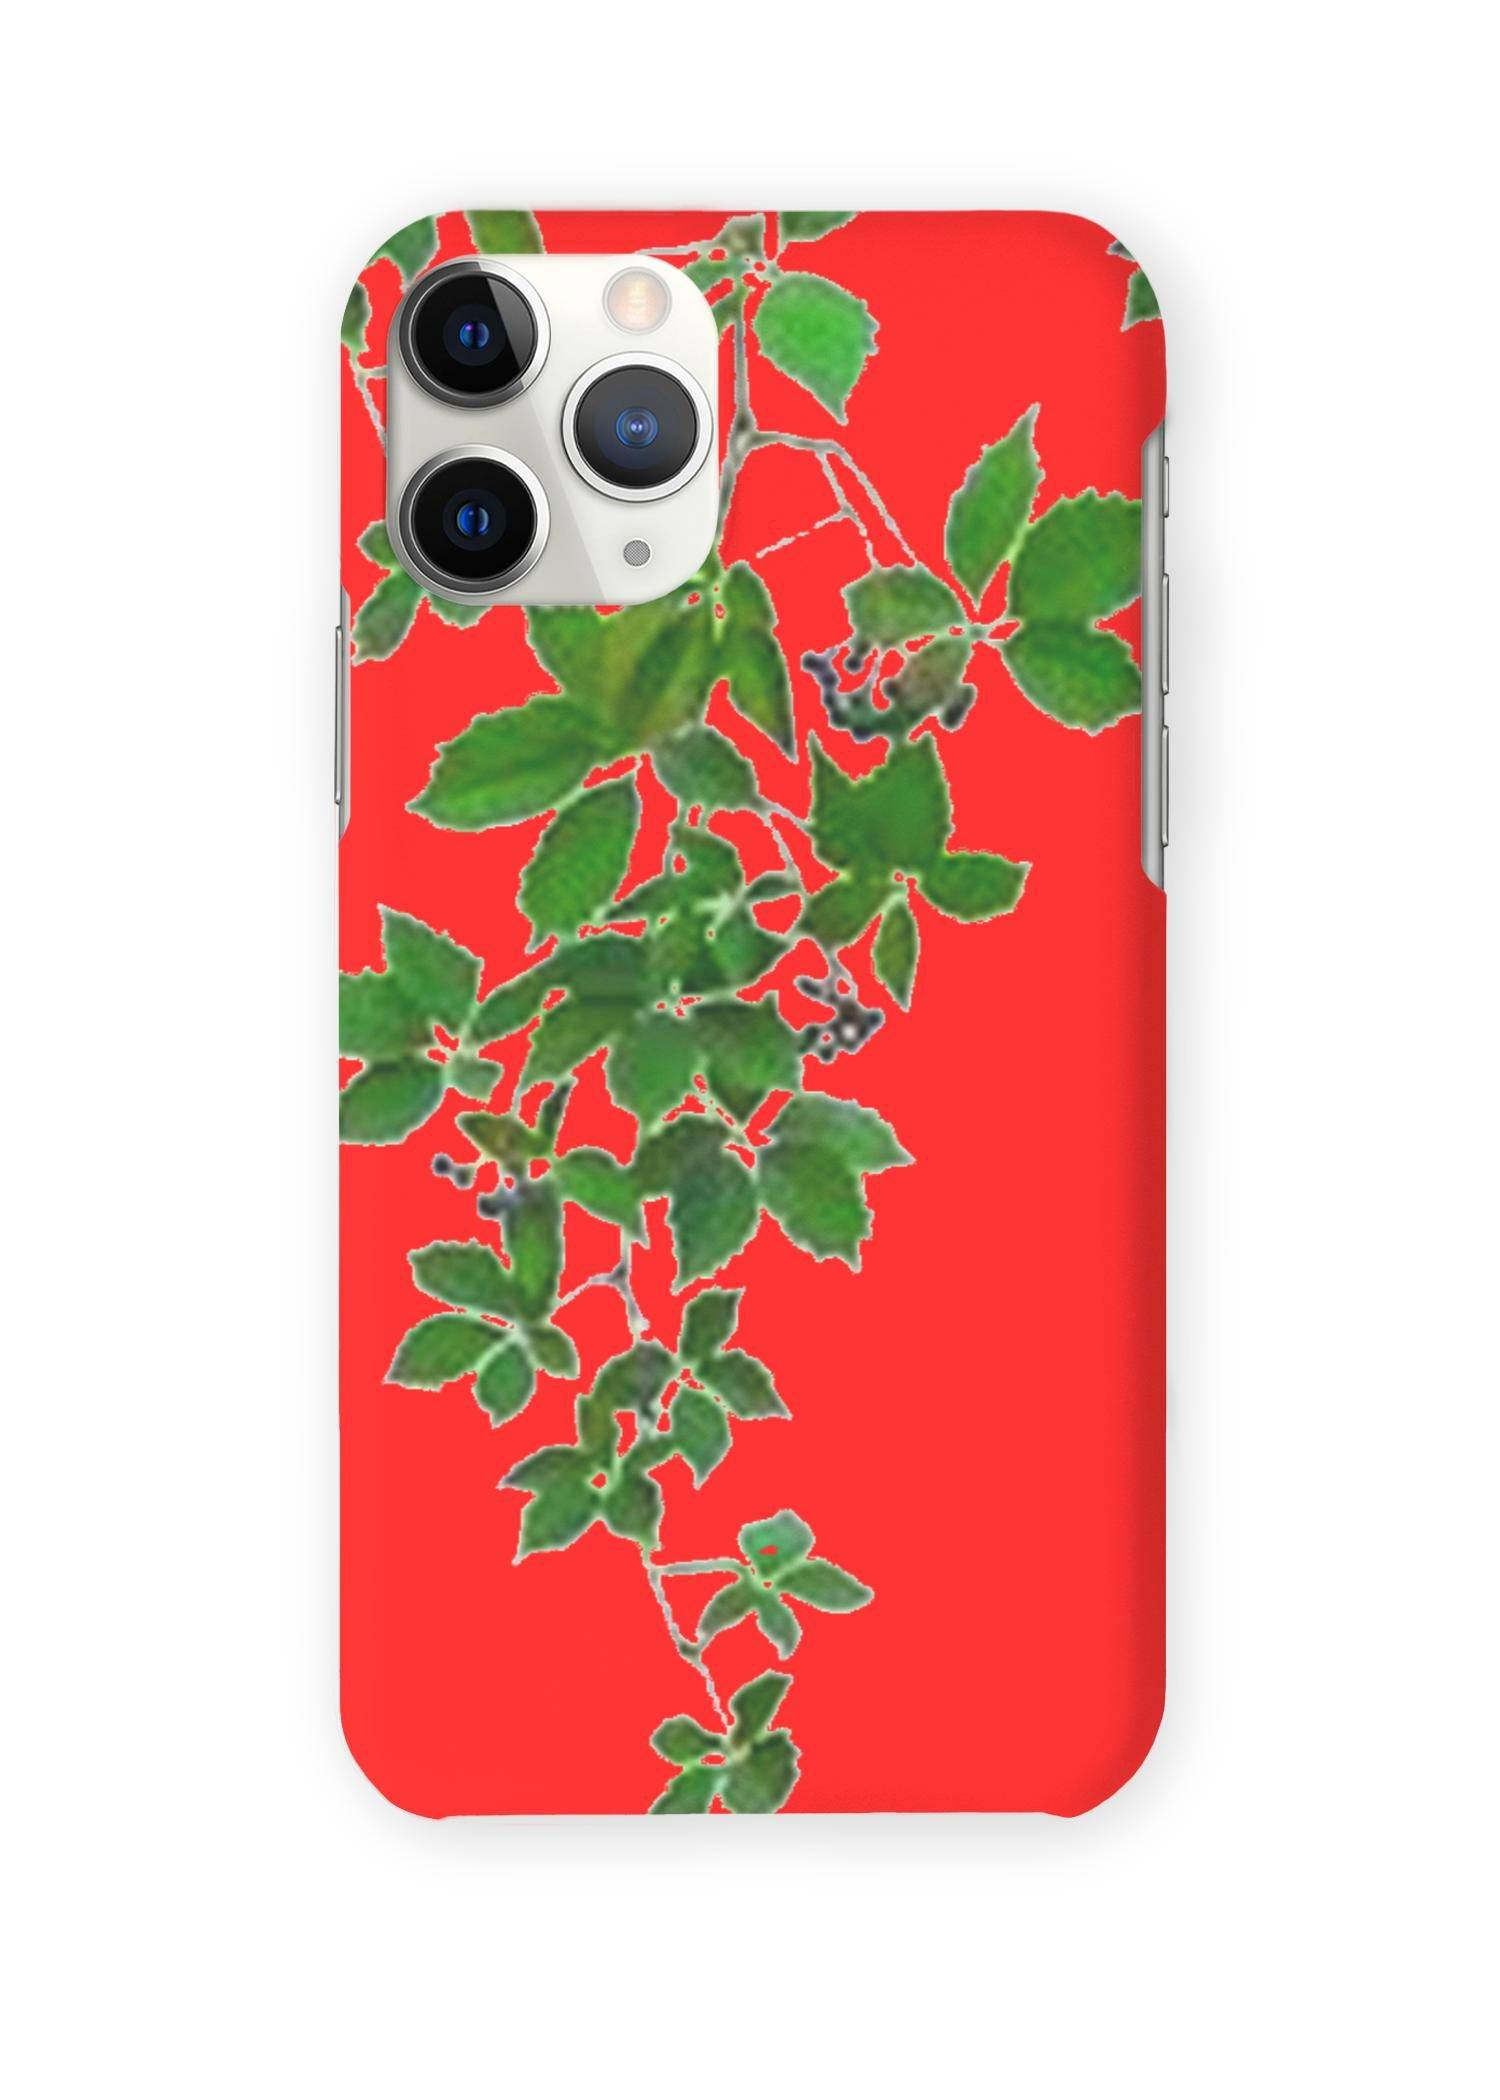 VIDA iPhone Case - Red Hanging Home Decor by VIDA Original Artist  - Size: iPhone 11 Pro / Ultraslim